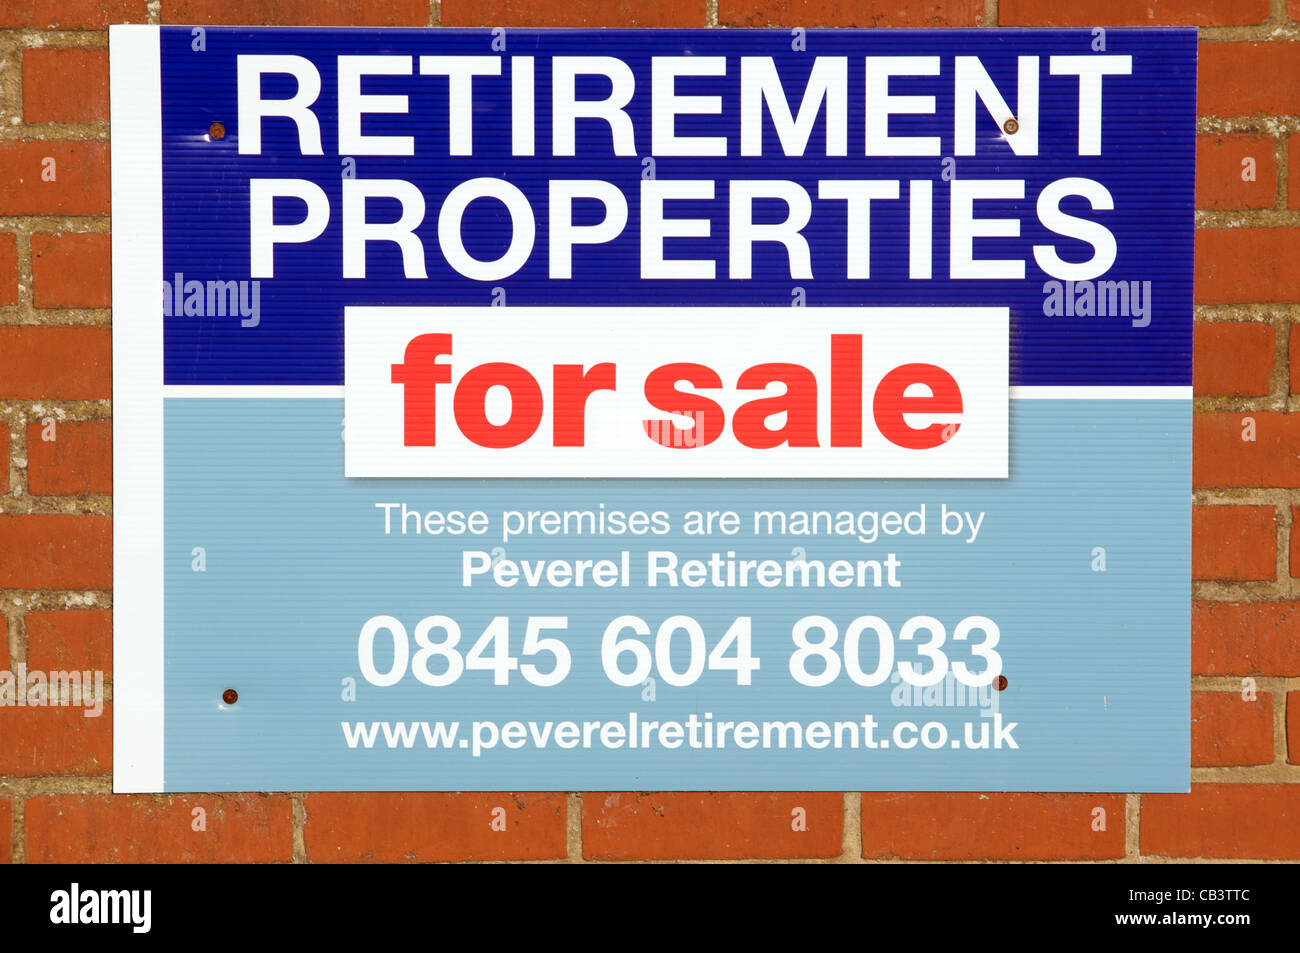 Retirement properties for sale sign - Stock Image